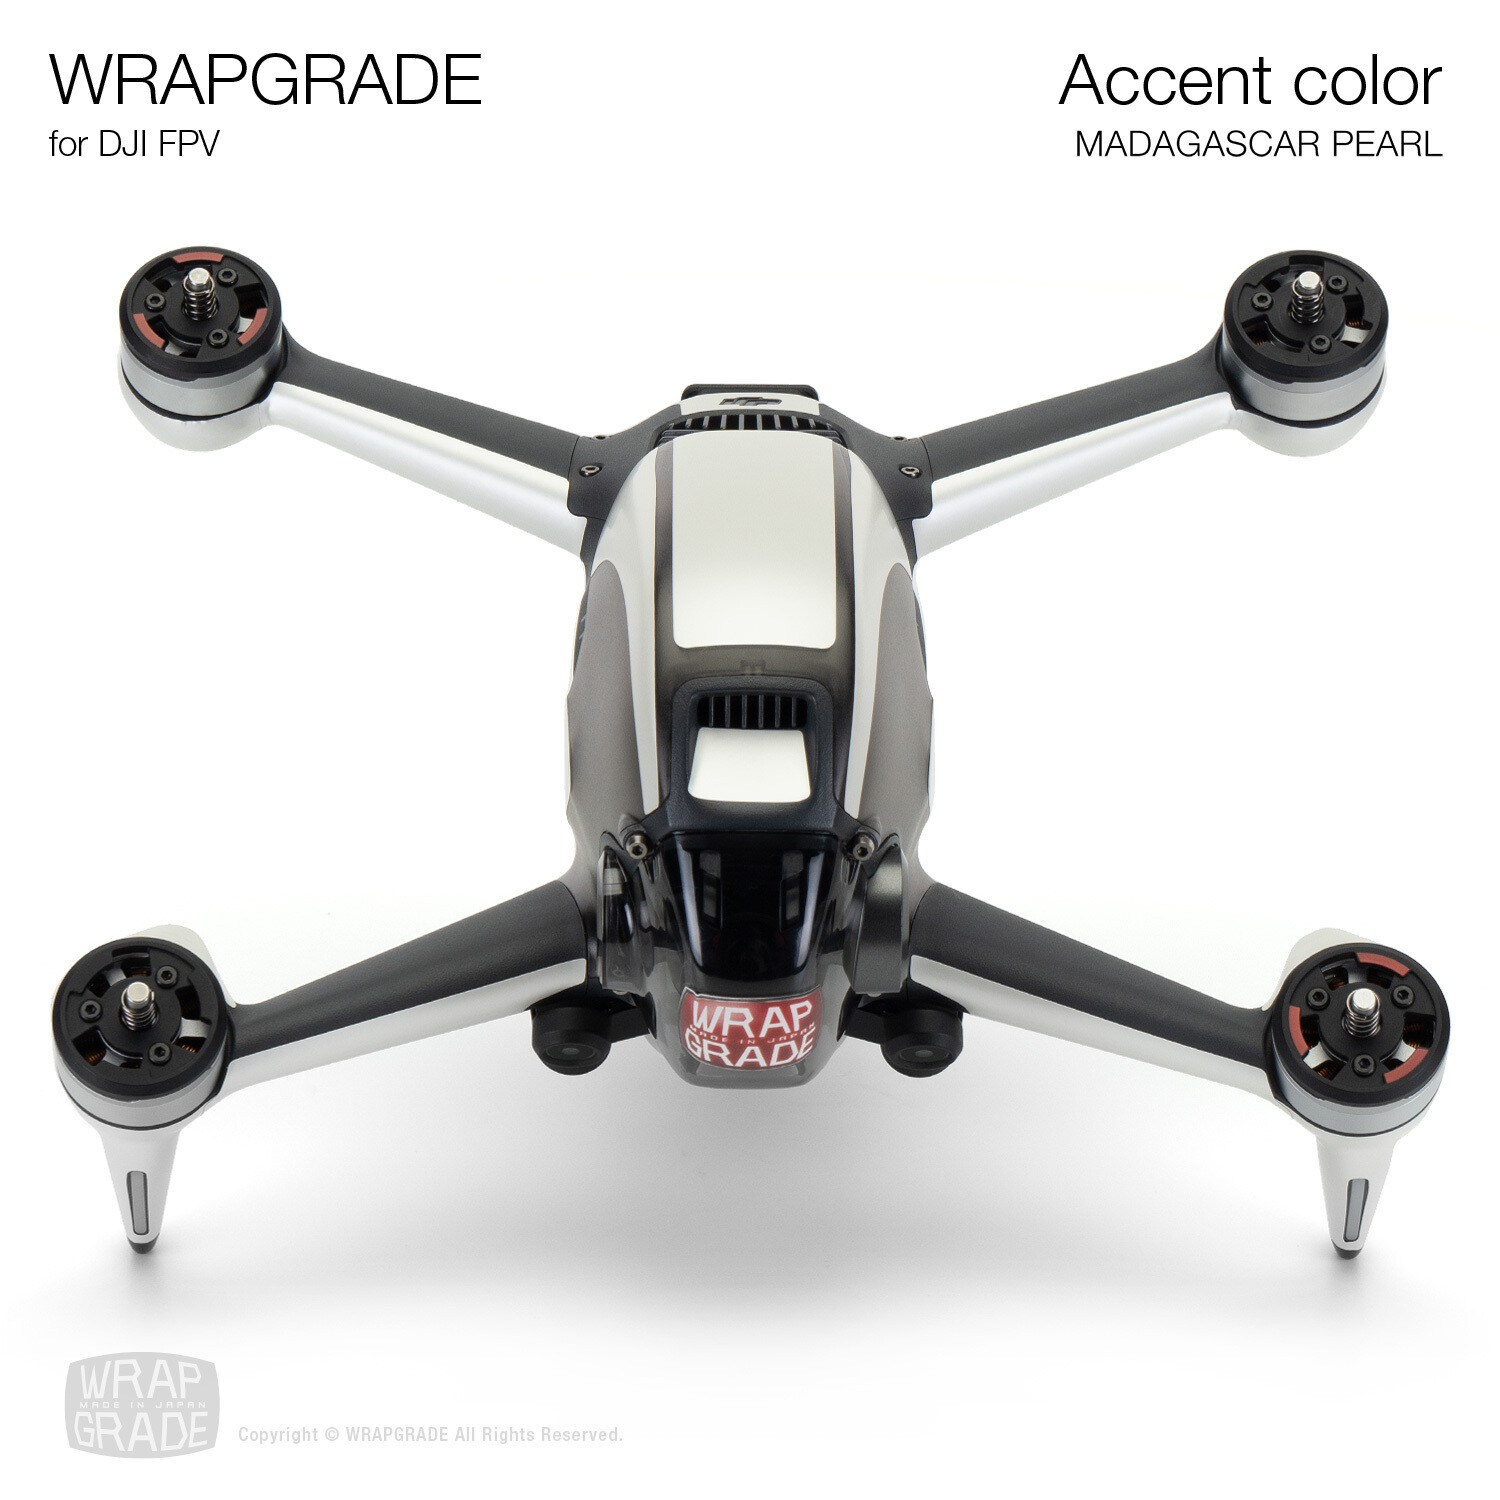 WRAPGRADE for DJI FPV | Accent color (MADAGASCAR PEARL)